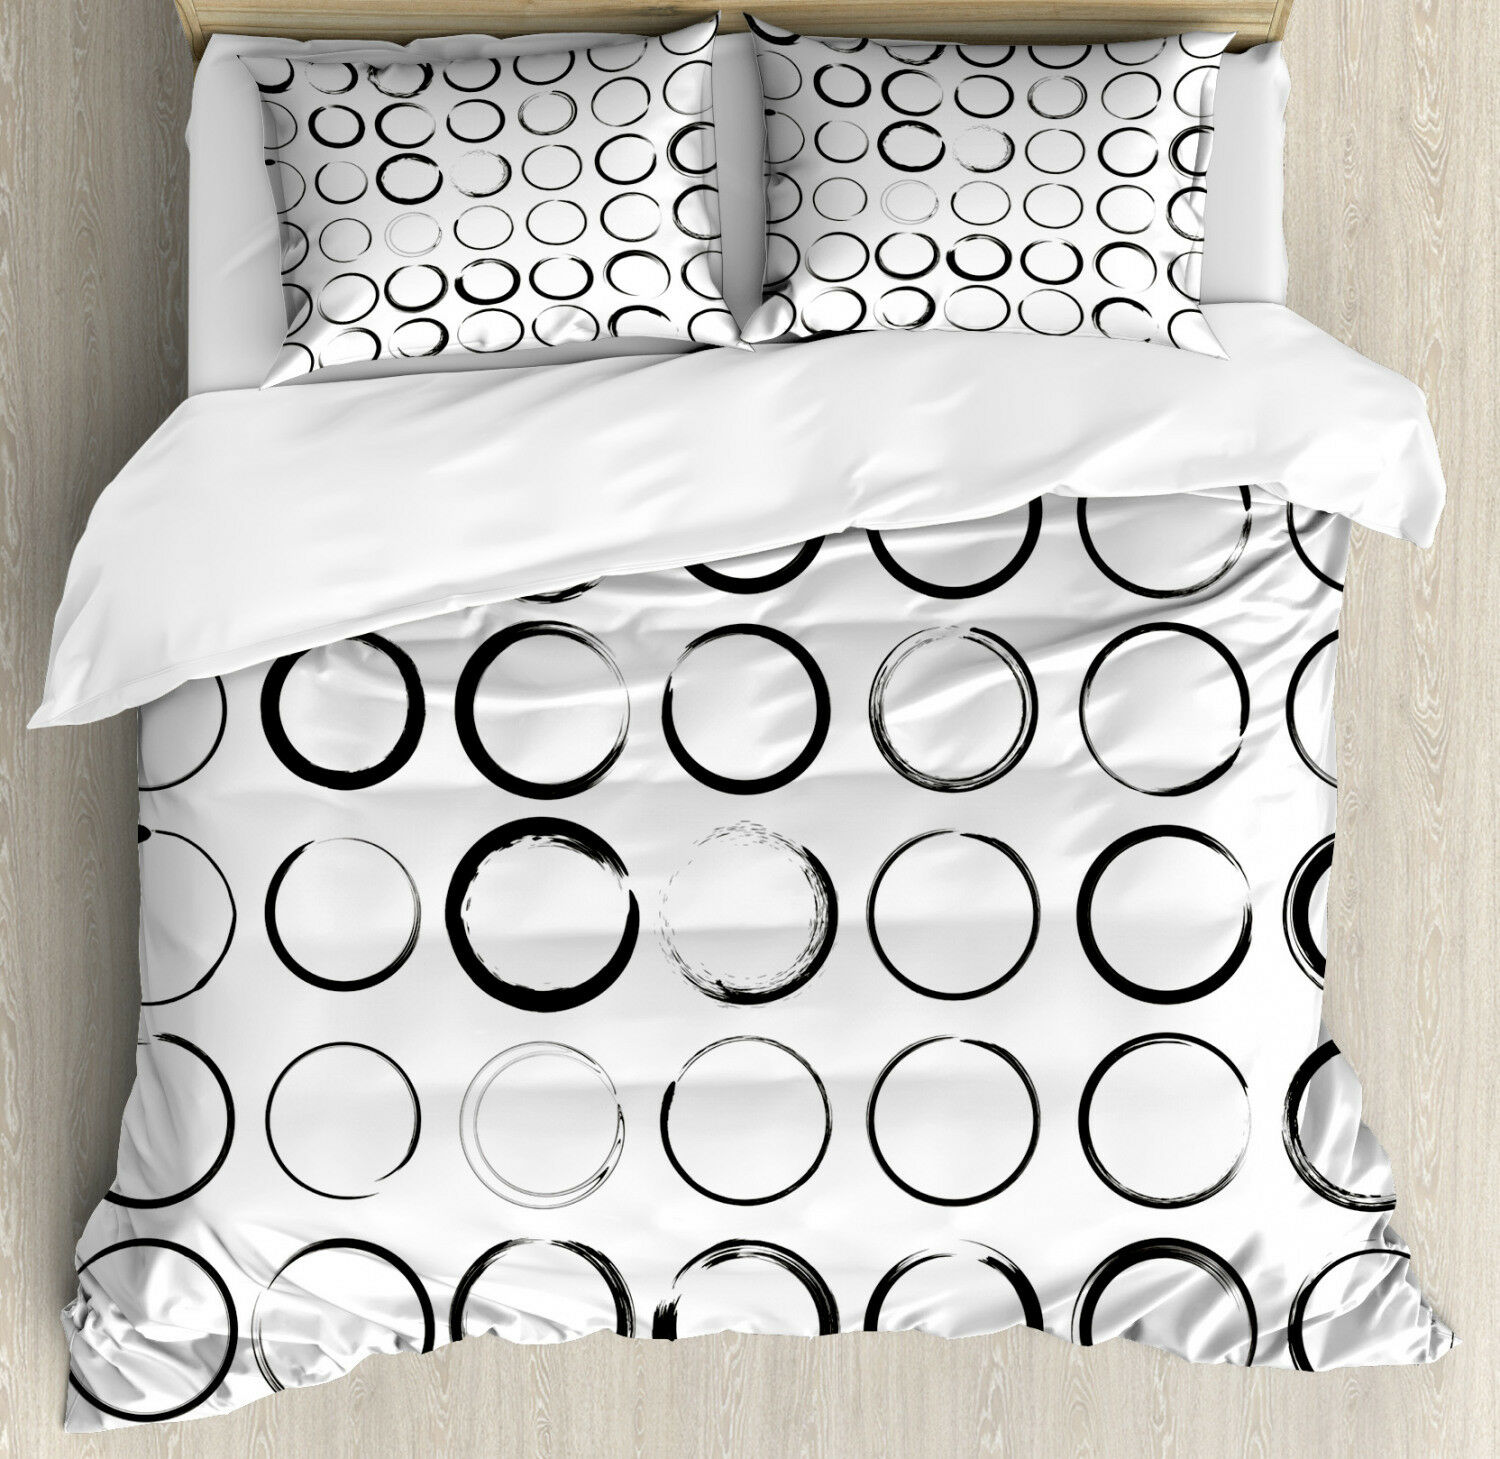 Grungy Duvet Cover Set with Pillow Shams Circle Brush Stroke Print